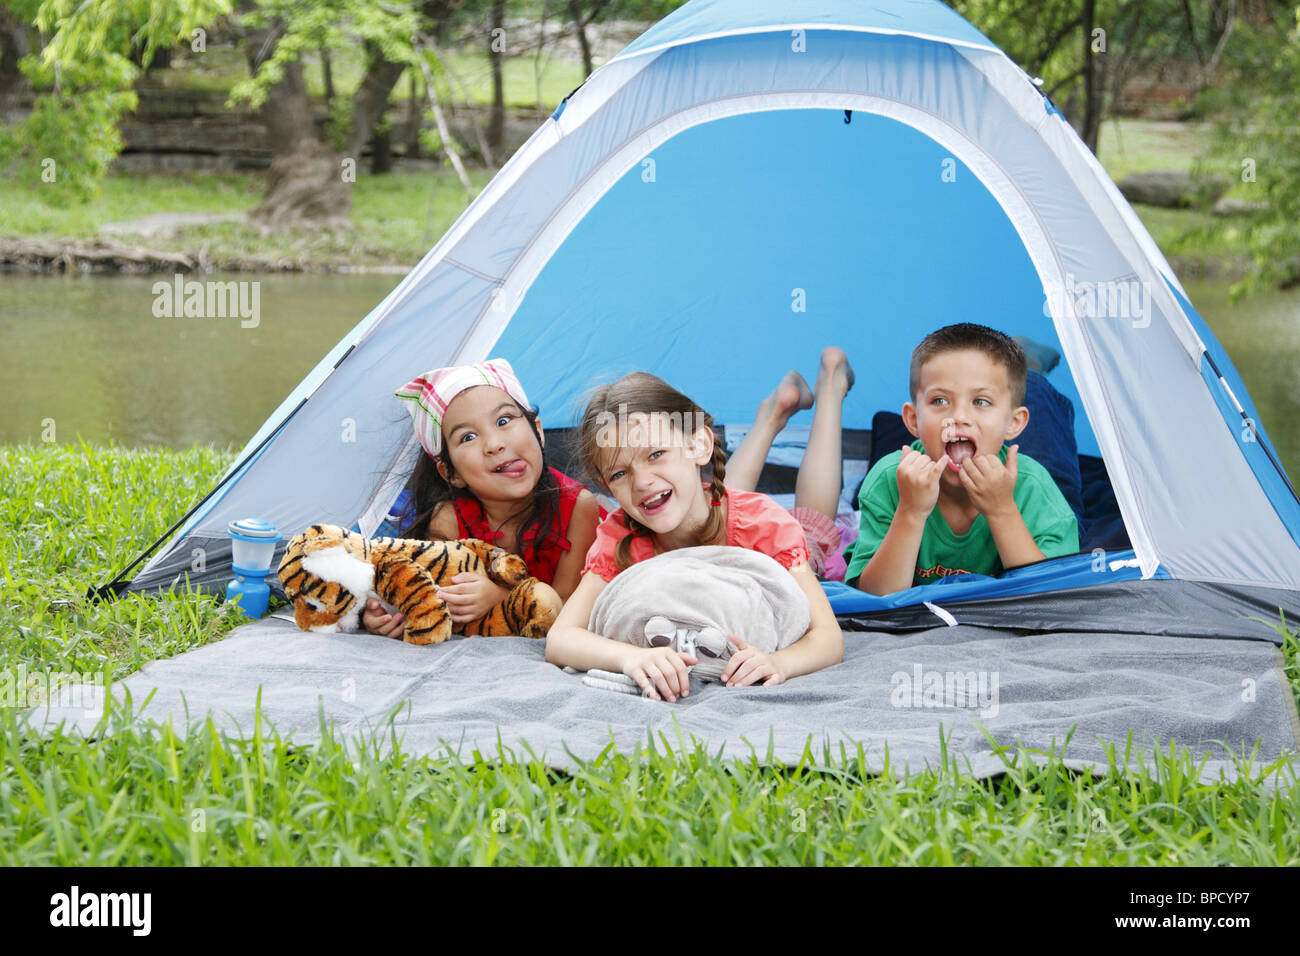 Kids in a tent acting goofy - Stock Image